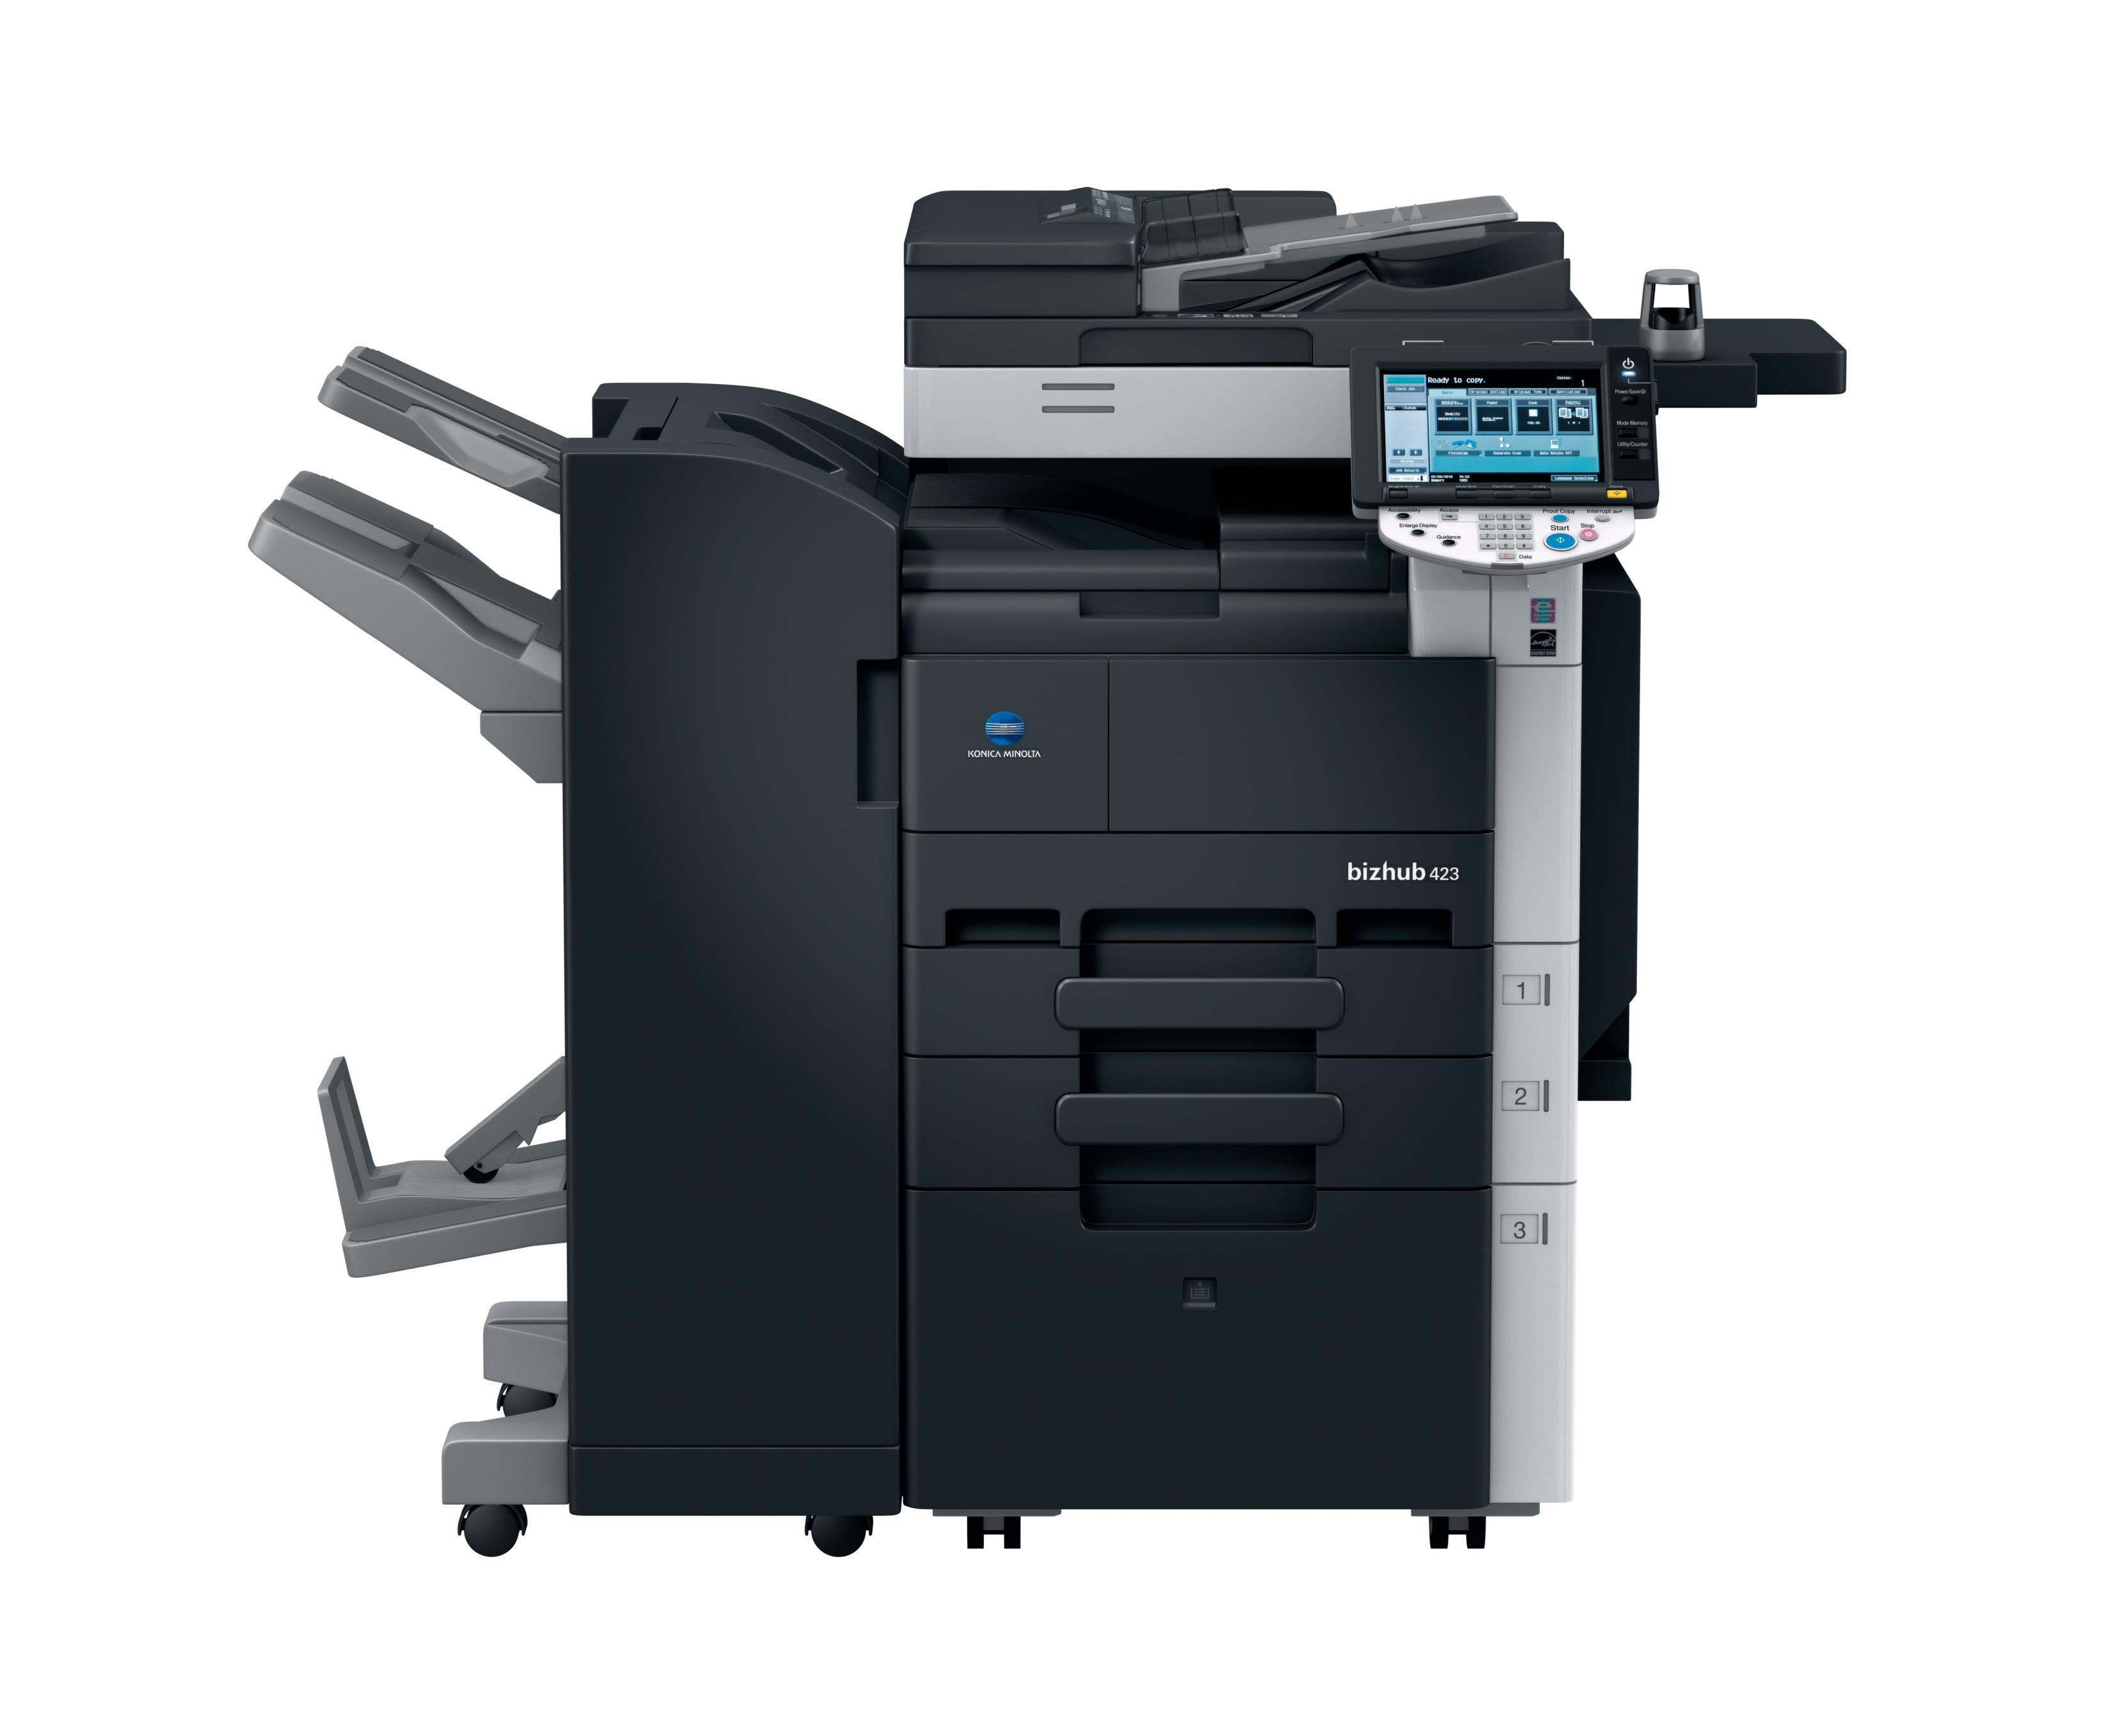 Printer Driver Download Konica Minolta Bizhub 423